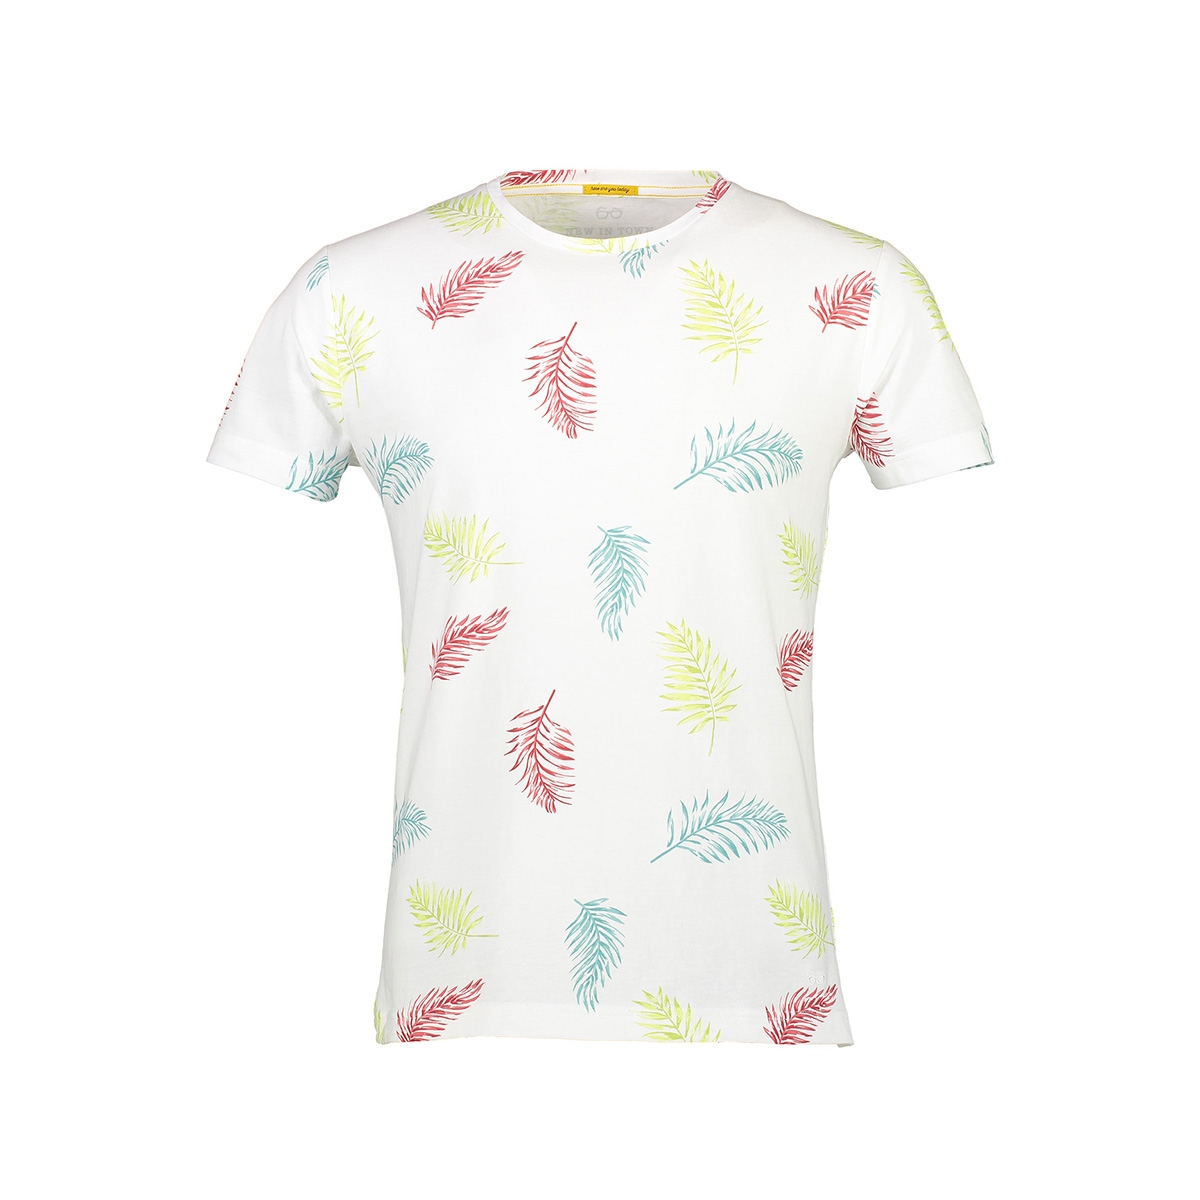 t-shirt met zomerse print 8943069 new in town t-shirt 100